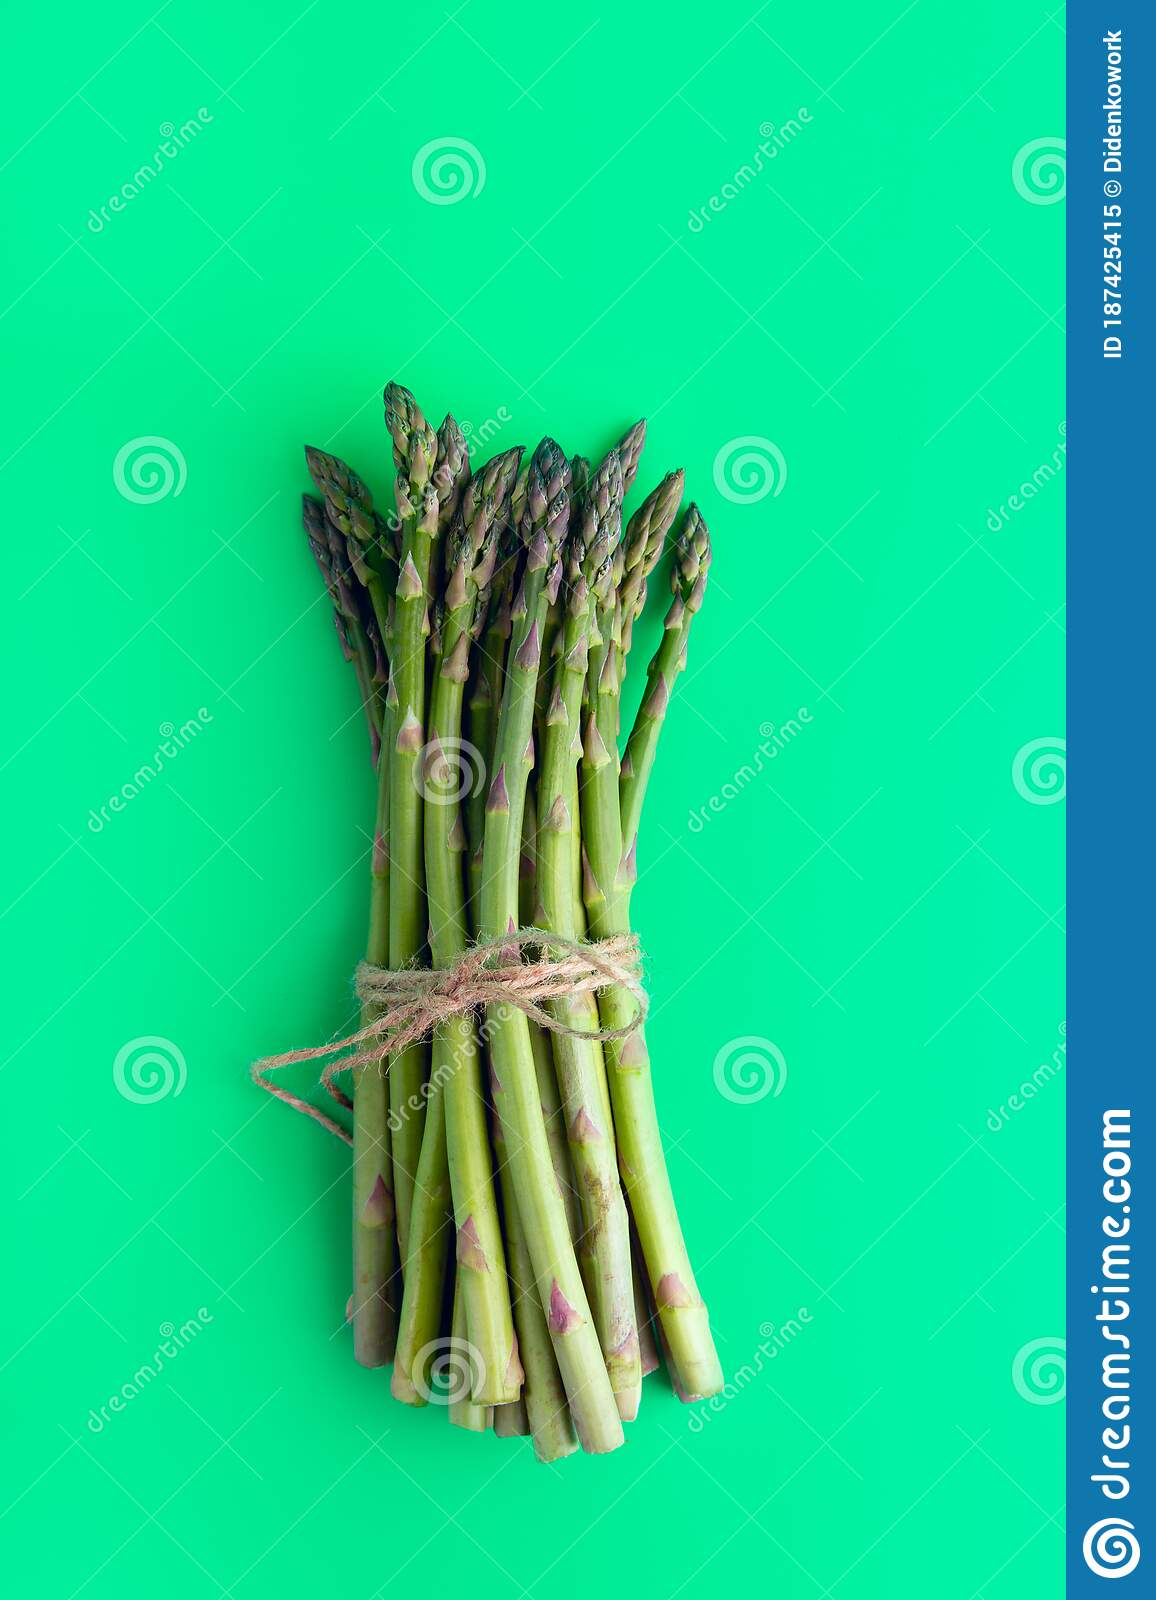 Asparagus On A Plain Green Background Stock Image Image Of Cooking Diet 187425415